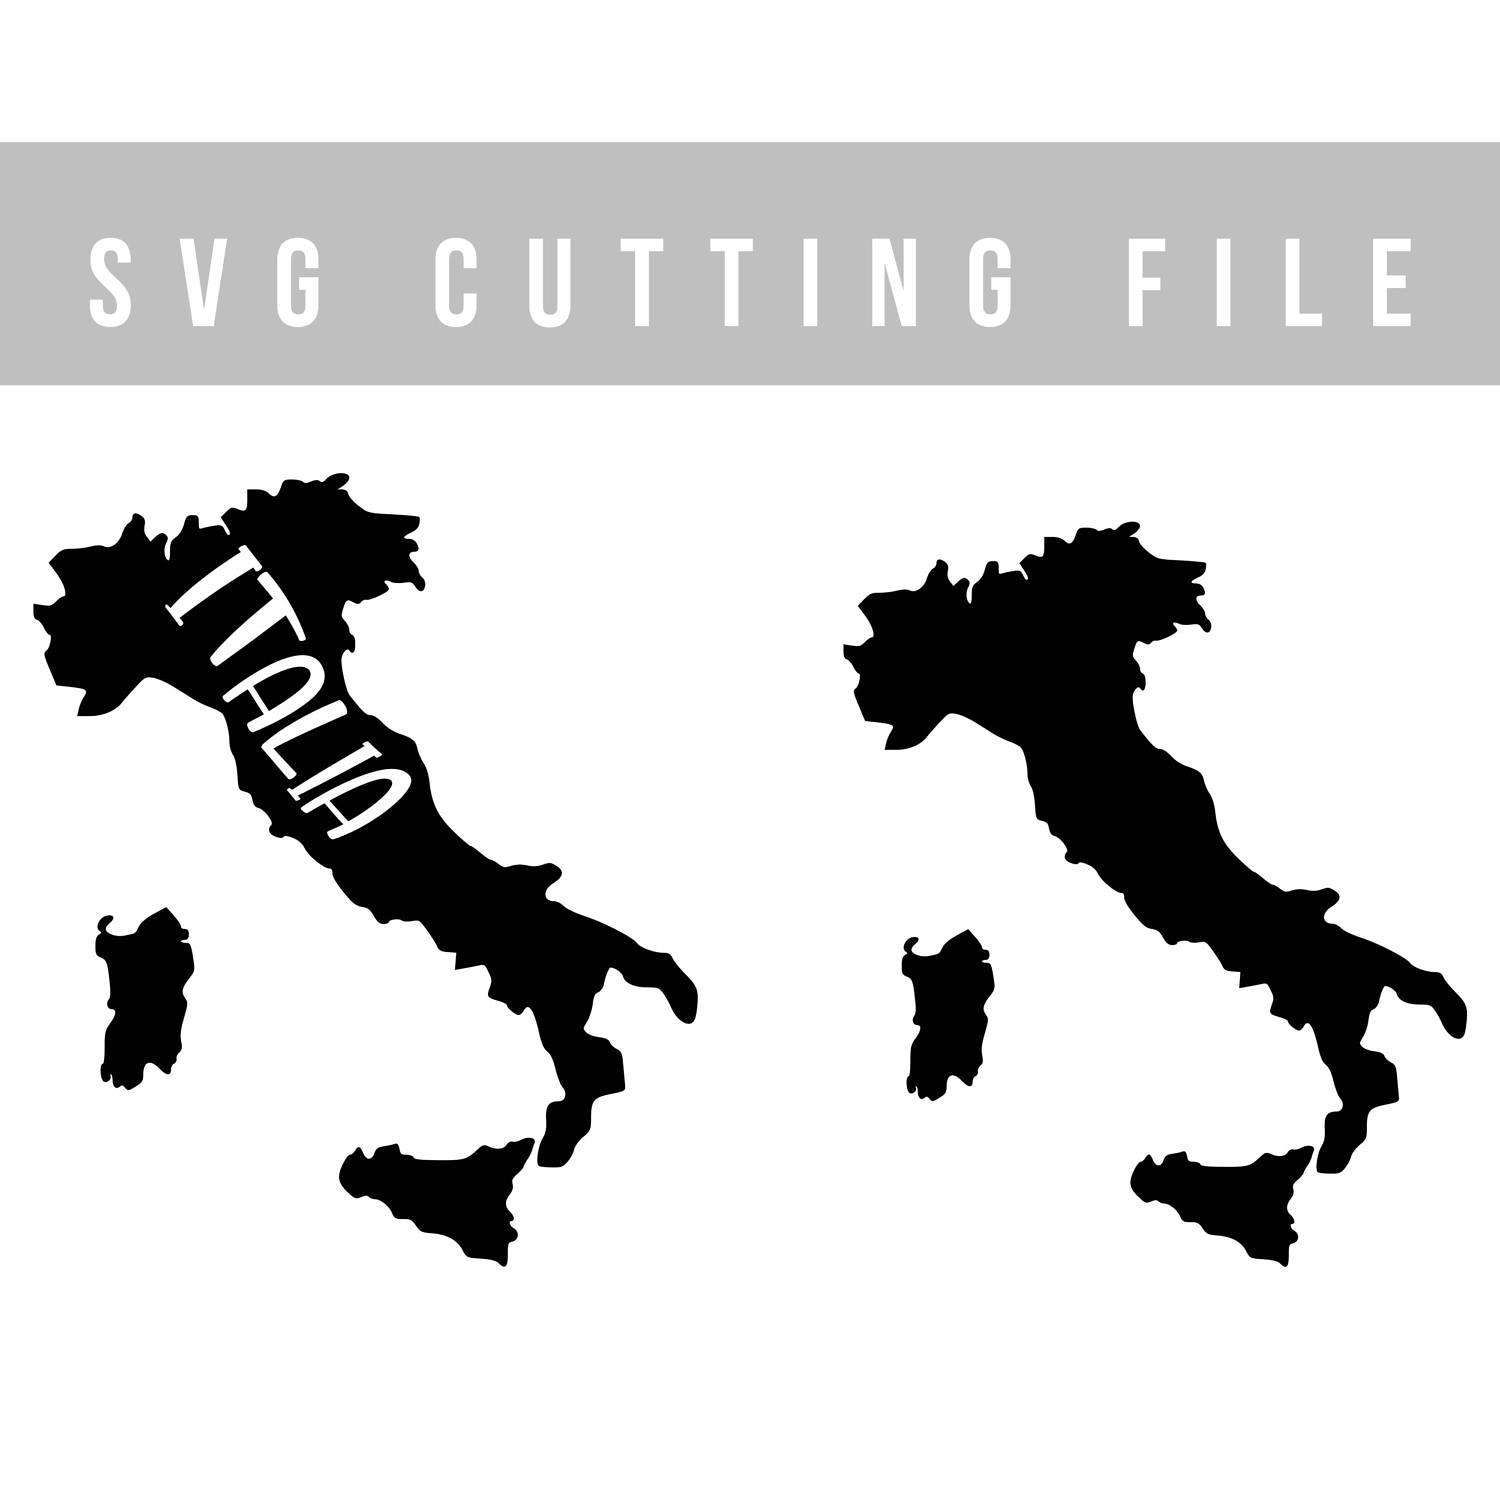 Italy clipart svg. Italia file map cutting